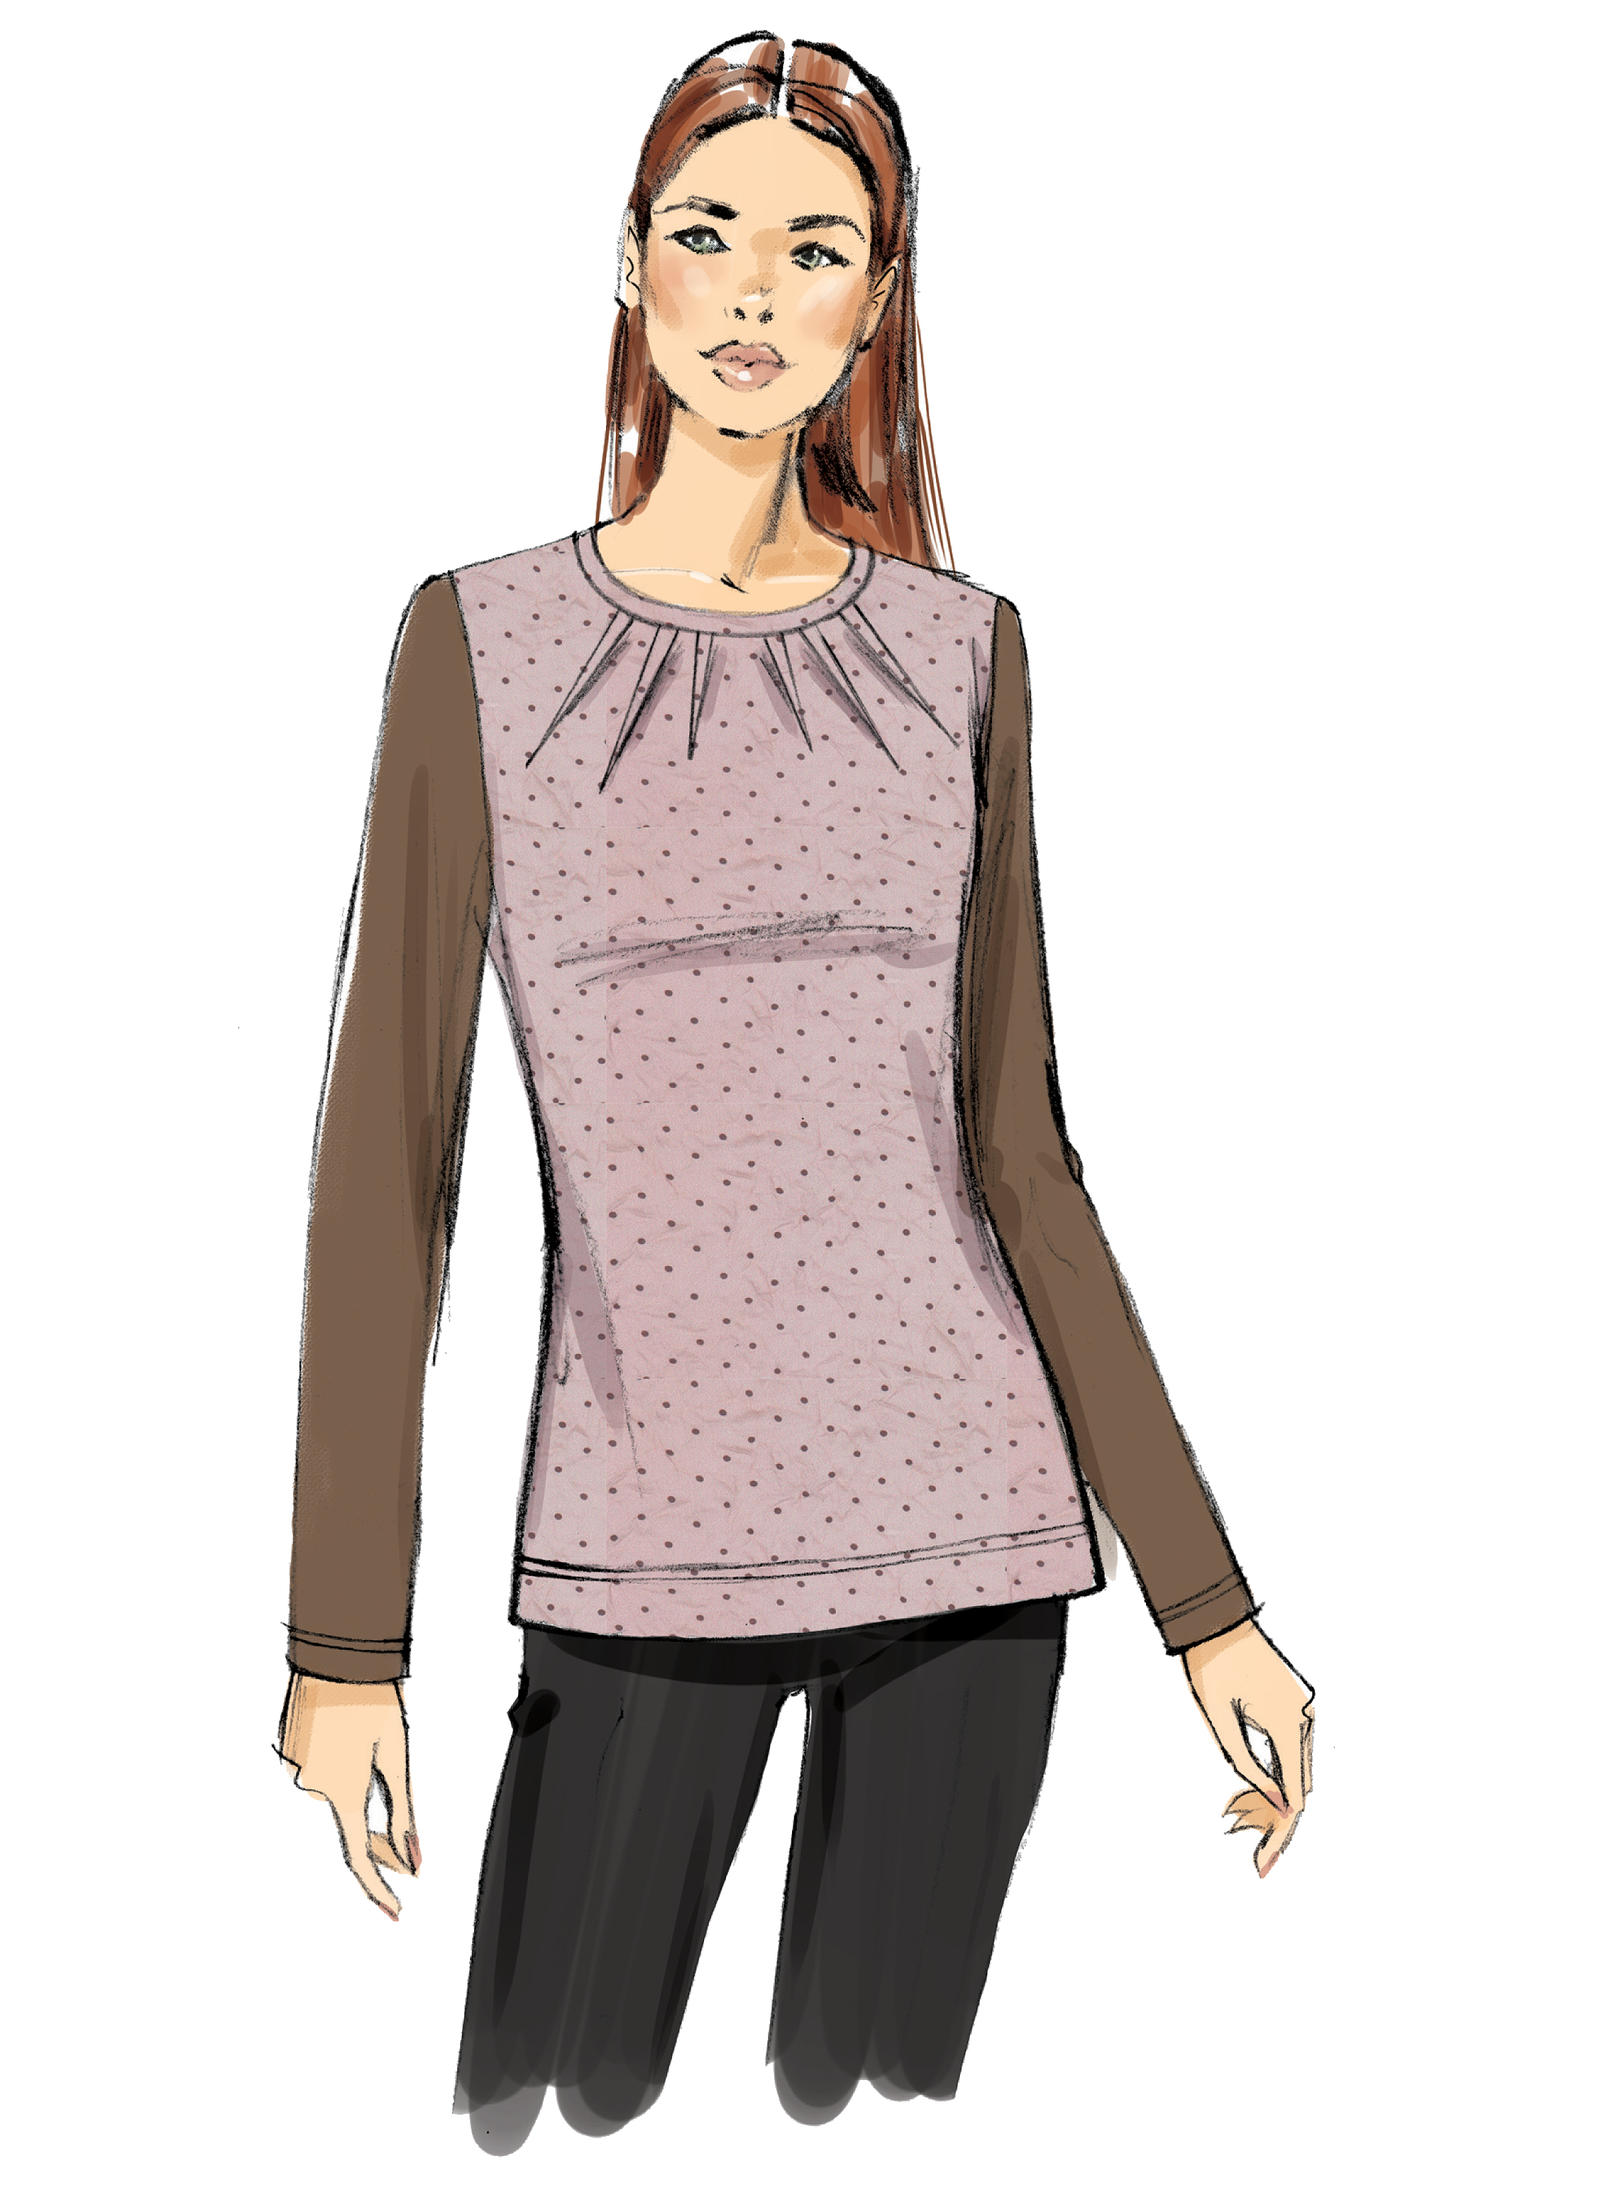 Vogue Patterns 9205 MISSES\' KNIT TOPS WITH INVERTED NECK DARTS